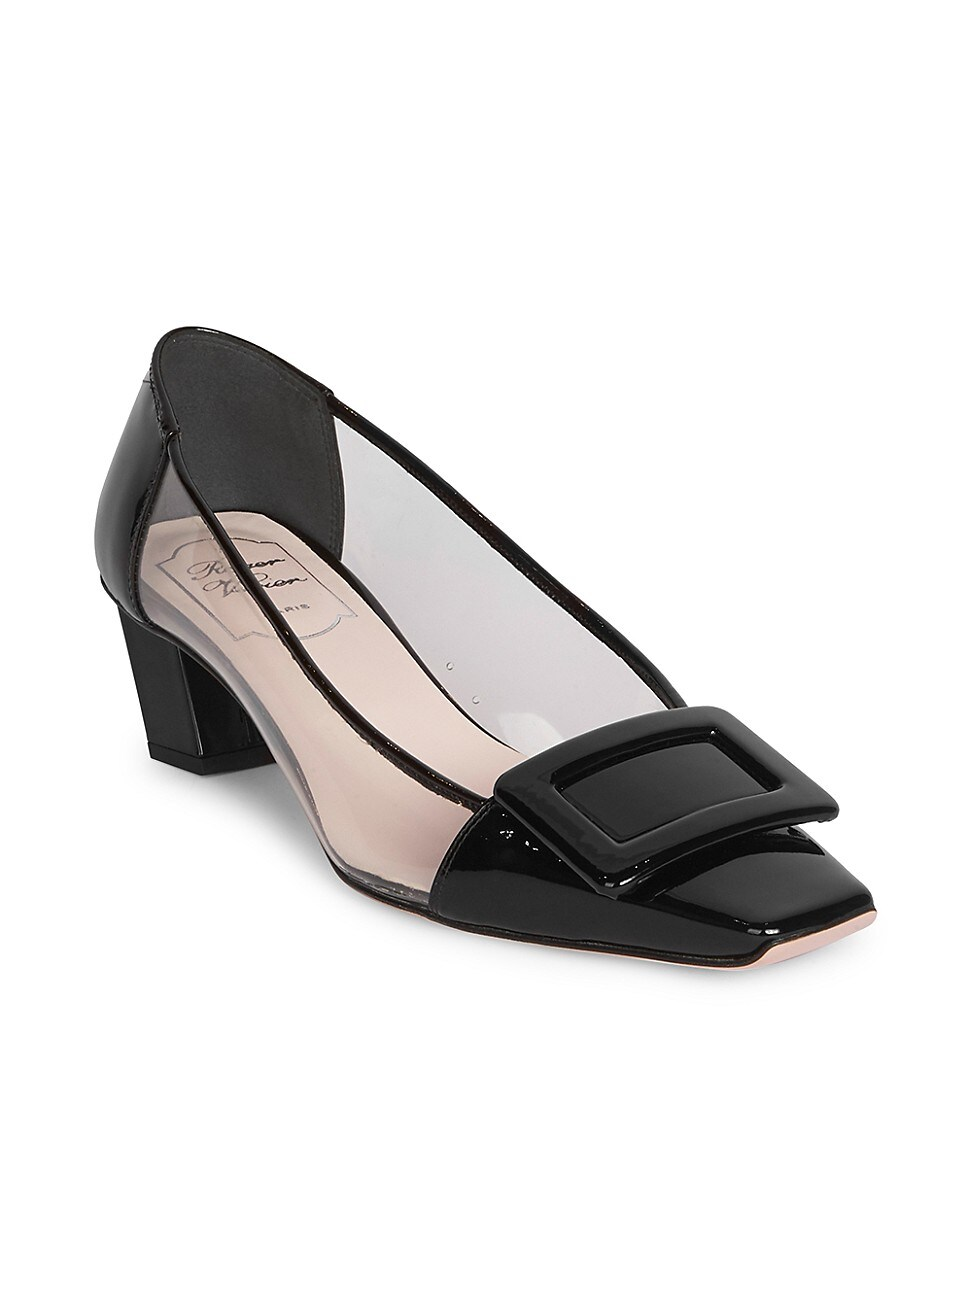 Roger Vivier WOMEN'S BELLE VIVIER PVC & PATENT LEATHER PUMPS